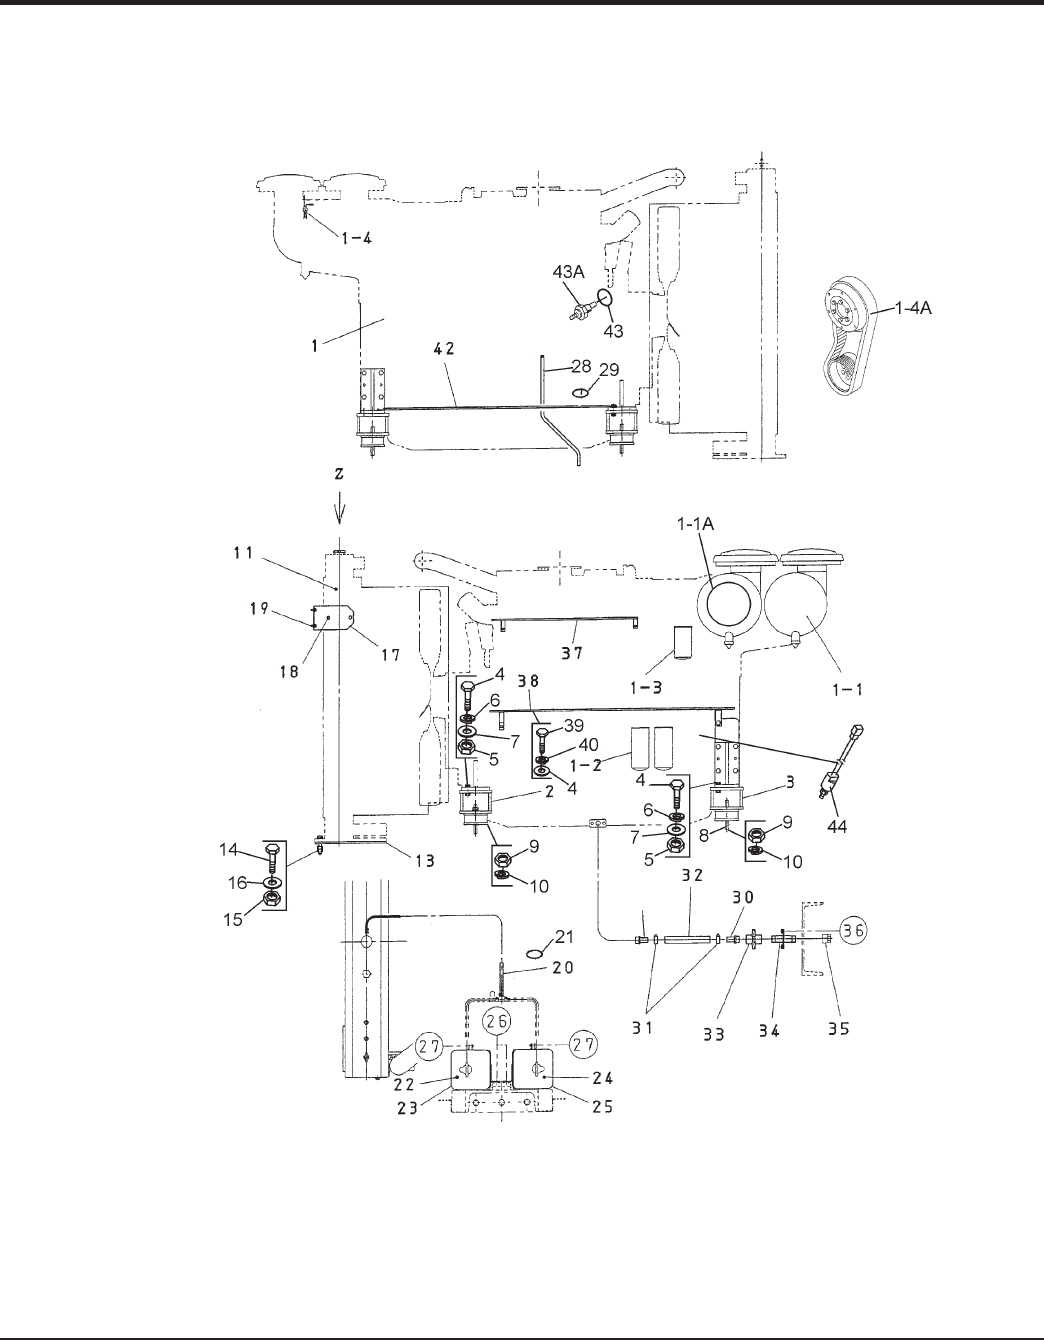 Page 66 dca800ssk2 60 hz generator operation and parts manual rev 0 09 03 09 engine assy